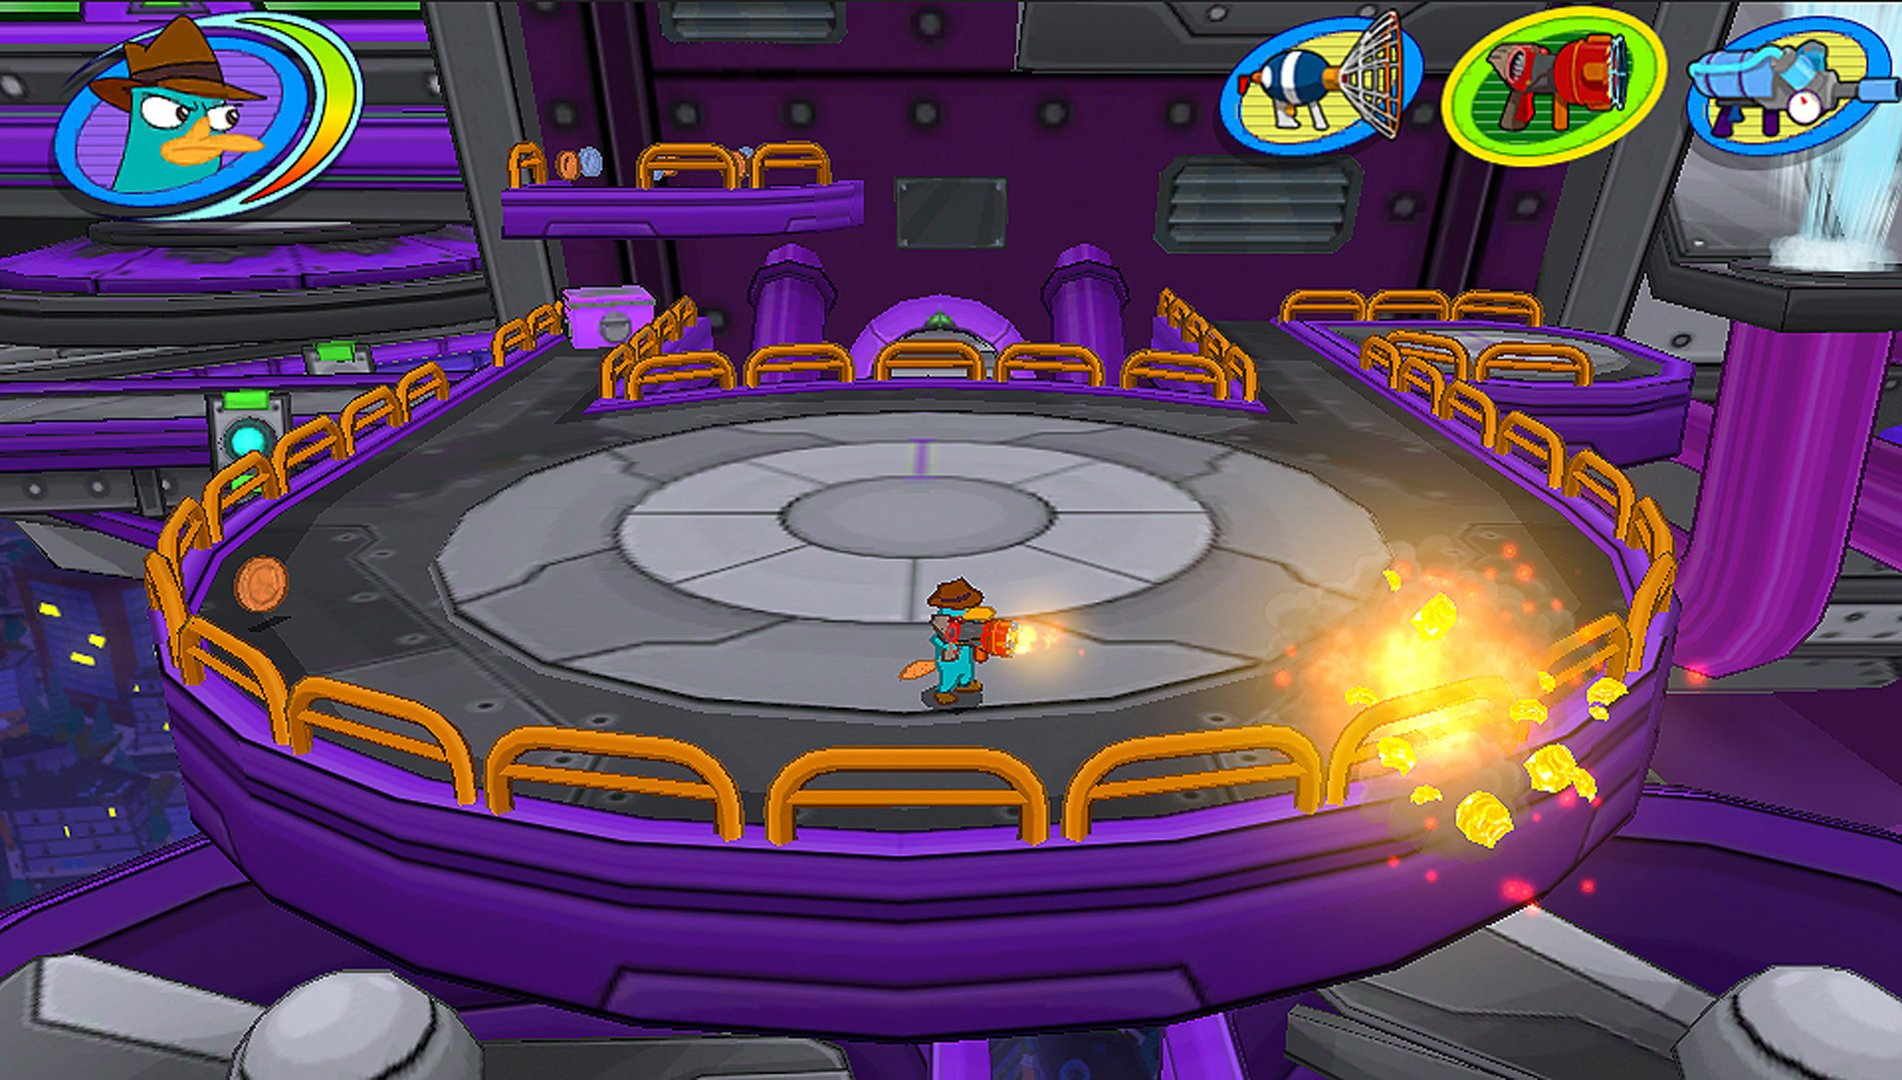 Sony Ps Vita Games Screenshots : Phineas and ferb day of doofenshmirtz ps vita